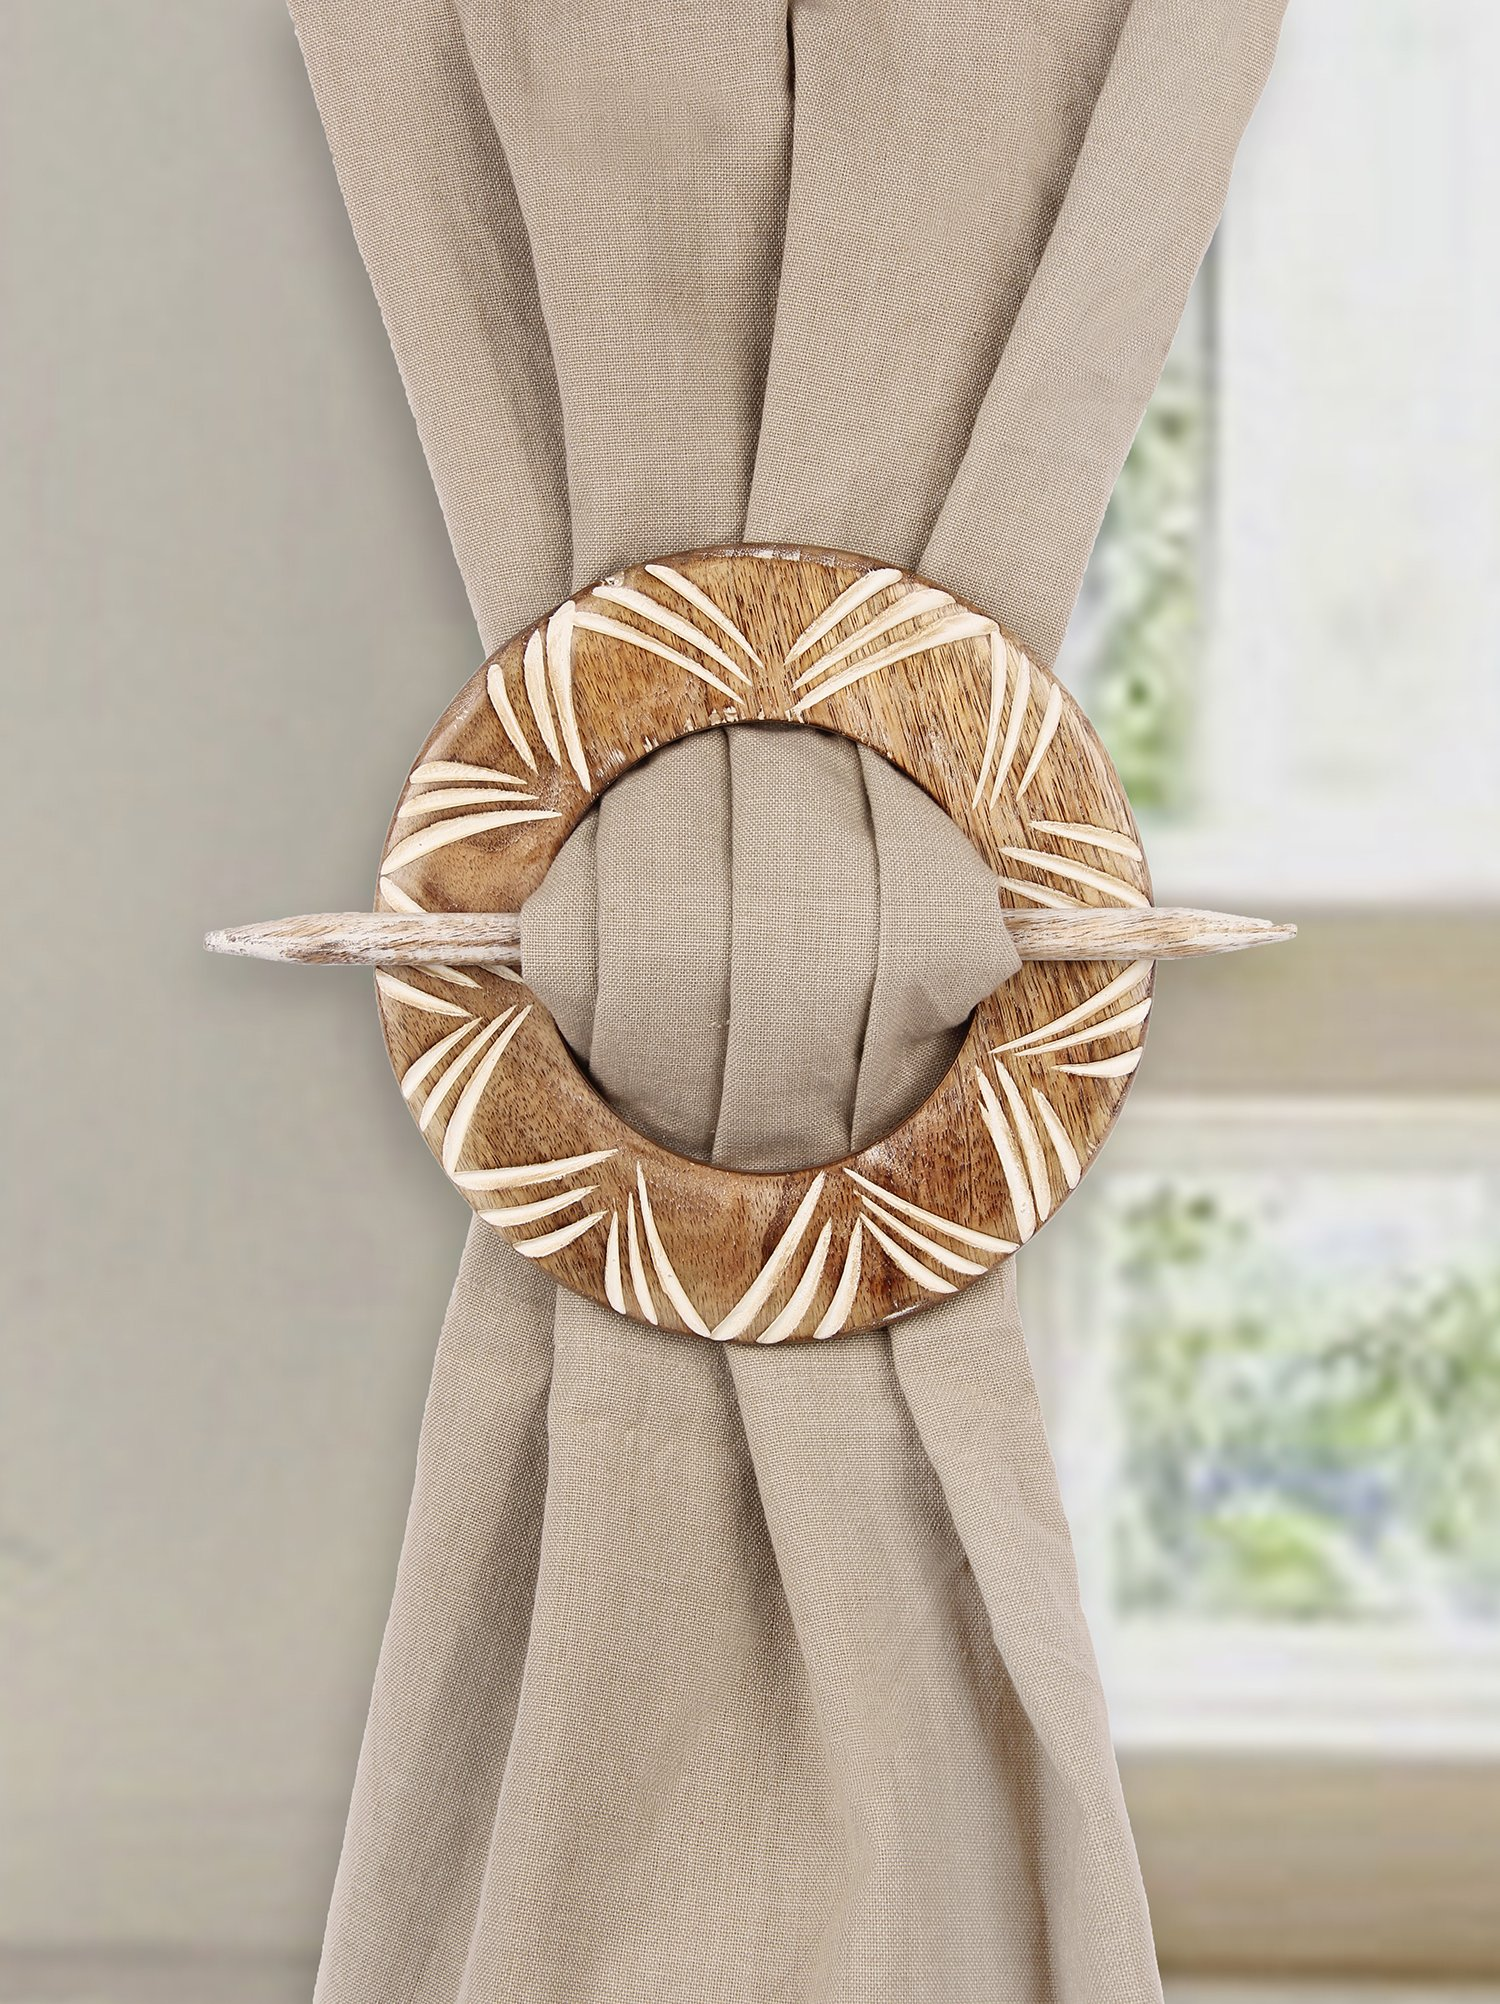 Aheli Decorative Wooden Curtain Tiebacks Set of 2 Window Treatment Holdbacks Drape Binds Hand Carved with White Distressed Finish by Aheli (Image #2)